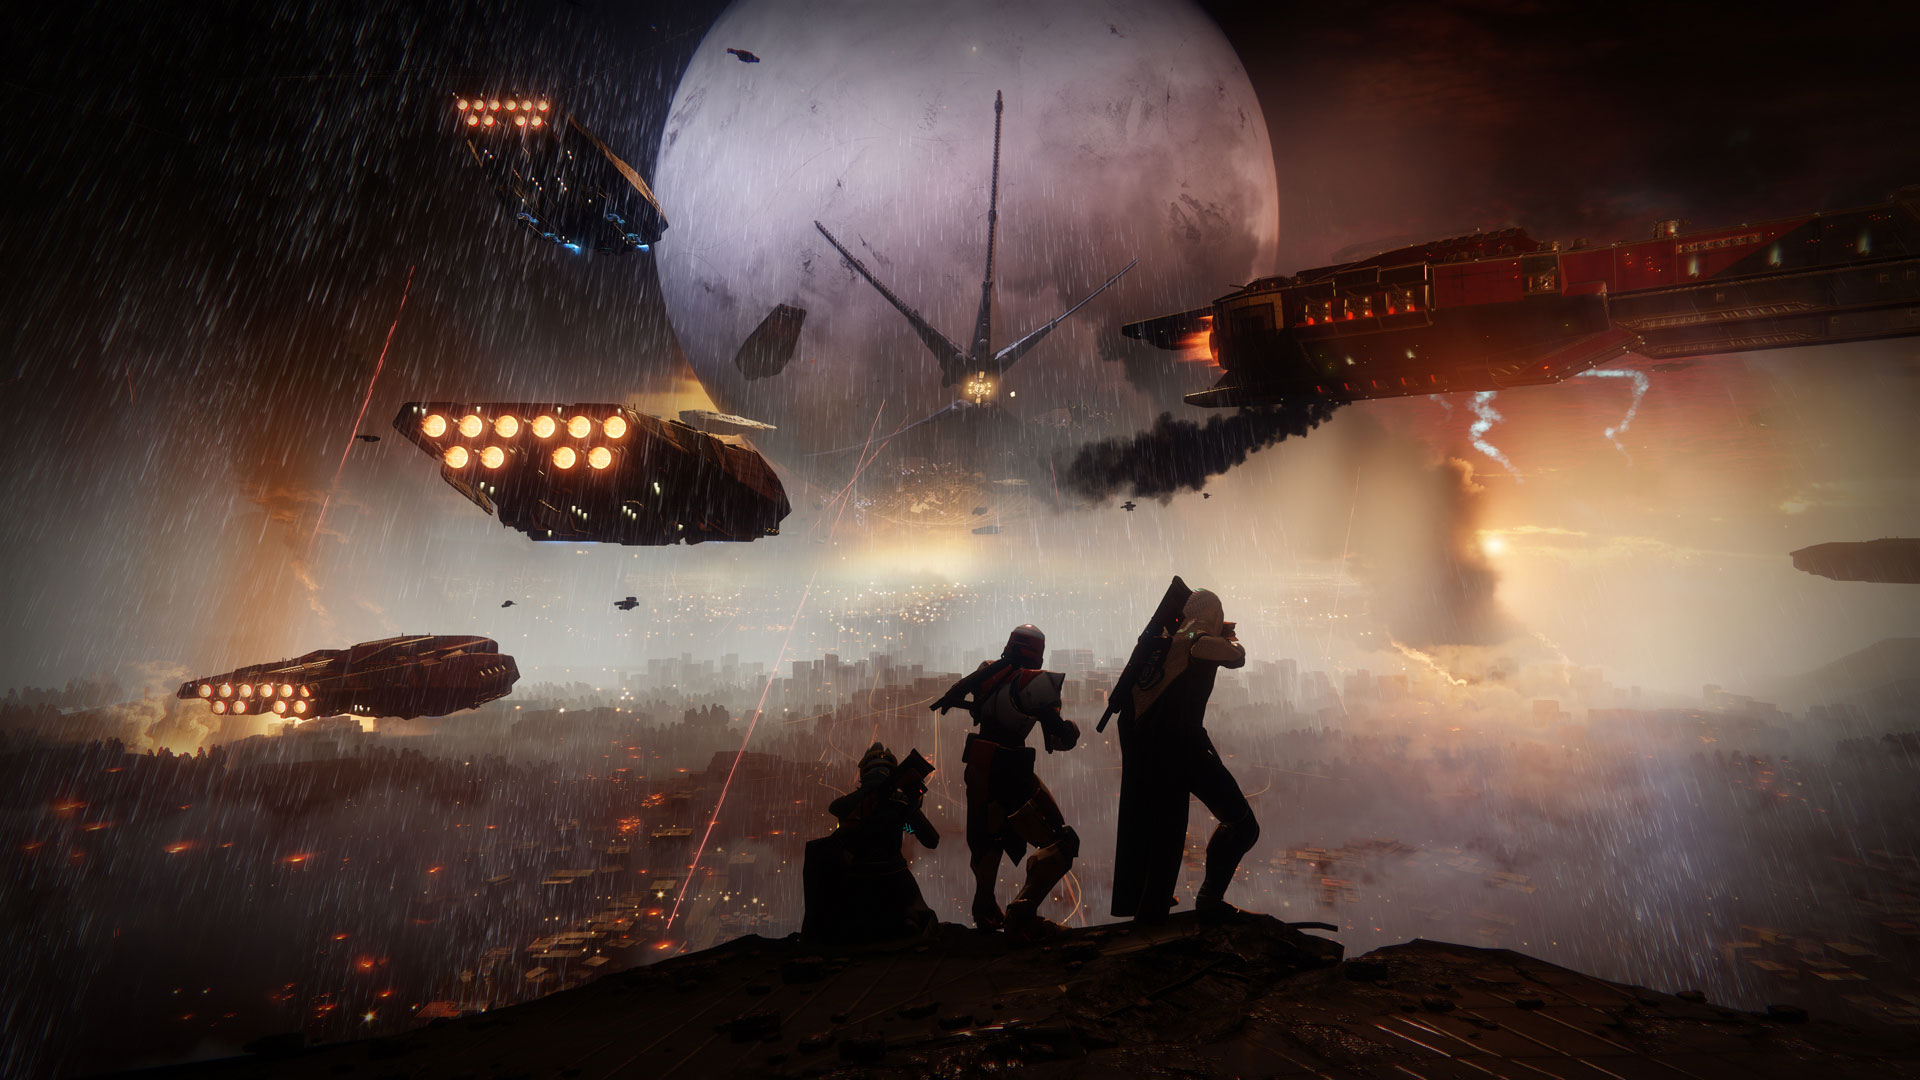 destiny-2s-campaign-reportedly-lasts-12-hours-social.jpg